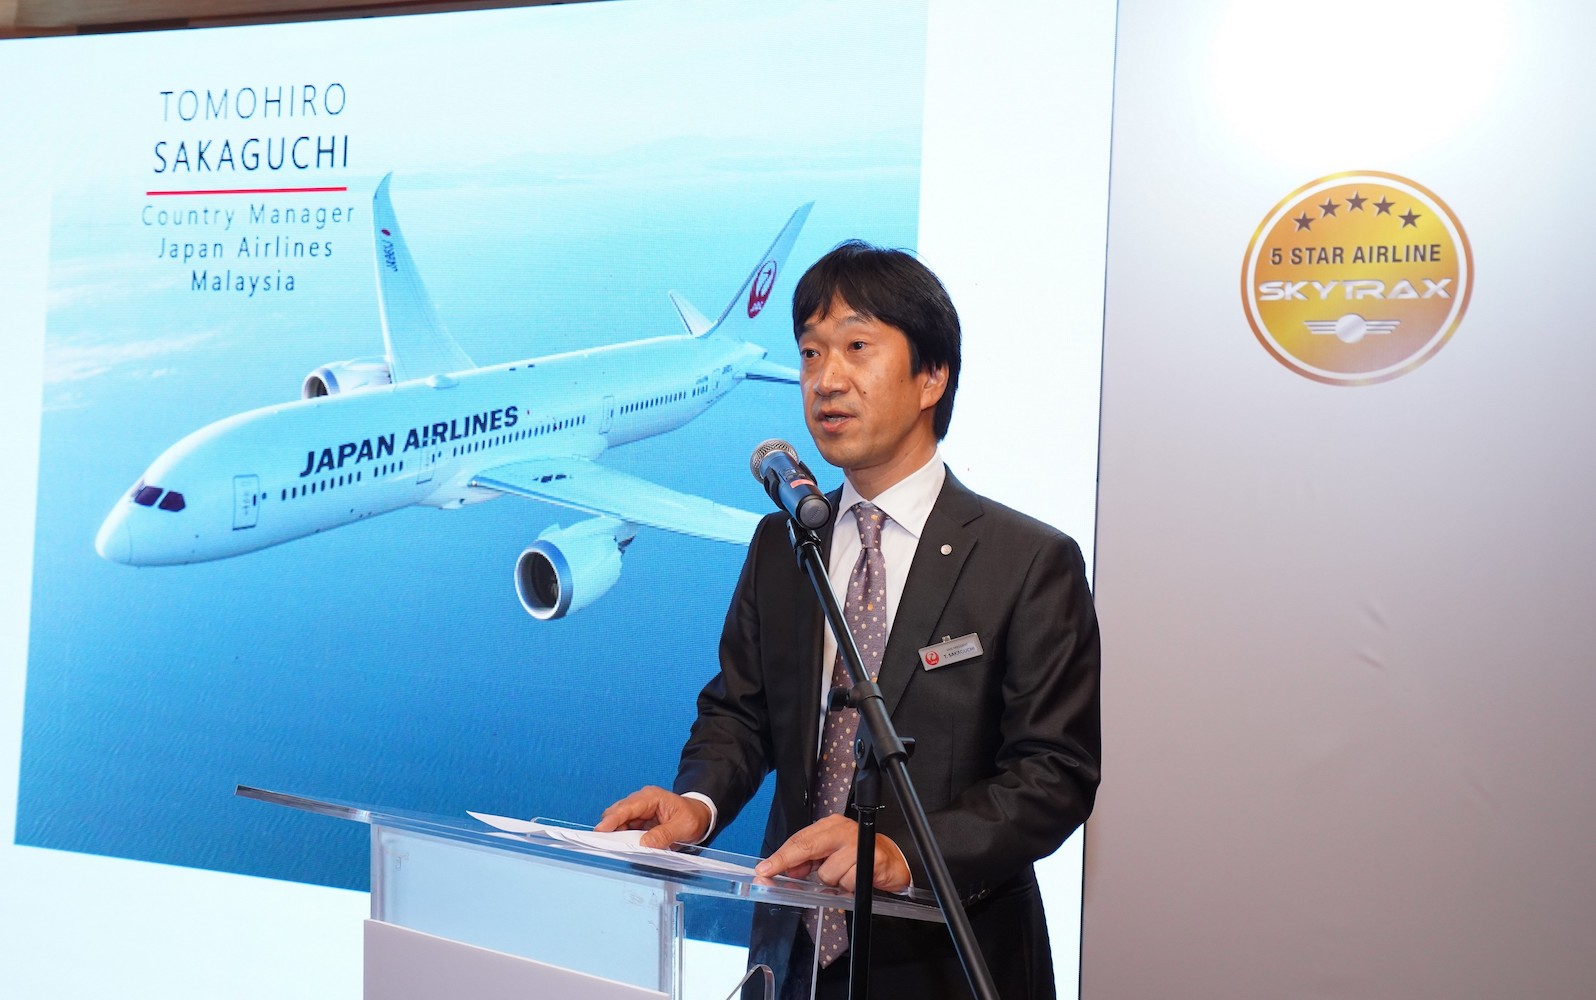 Tomohiro Sakaguchi, Vice President/Country Manager of Japan Airlines